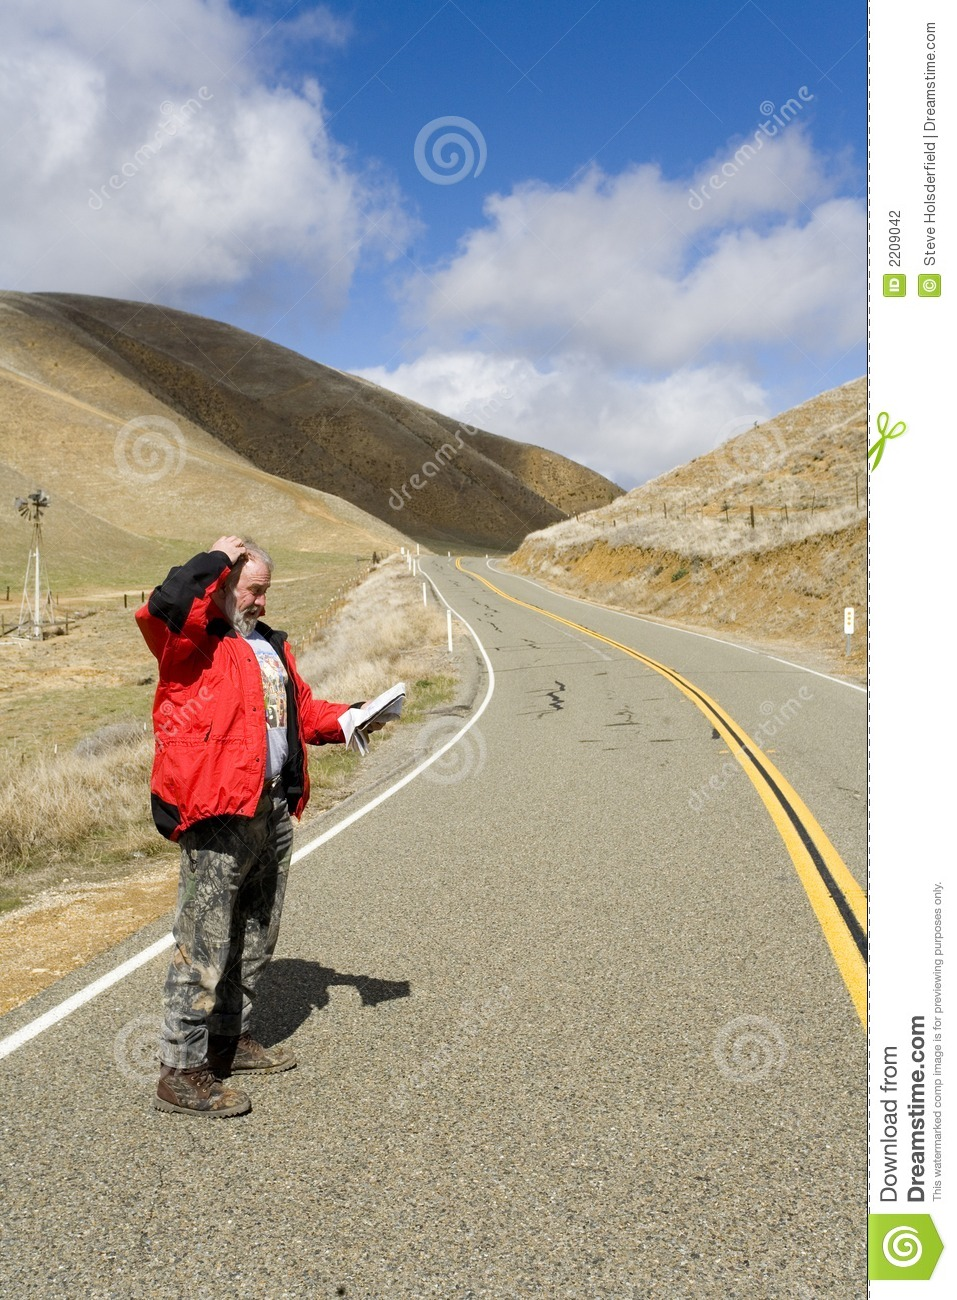 Time Road Id Roblox: Man Lost On A Desolate Road Stock Photography